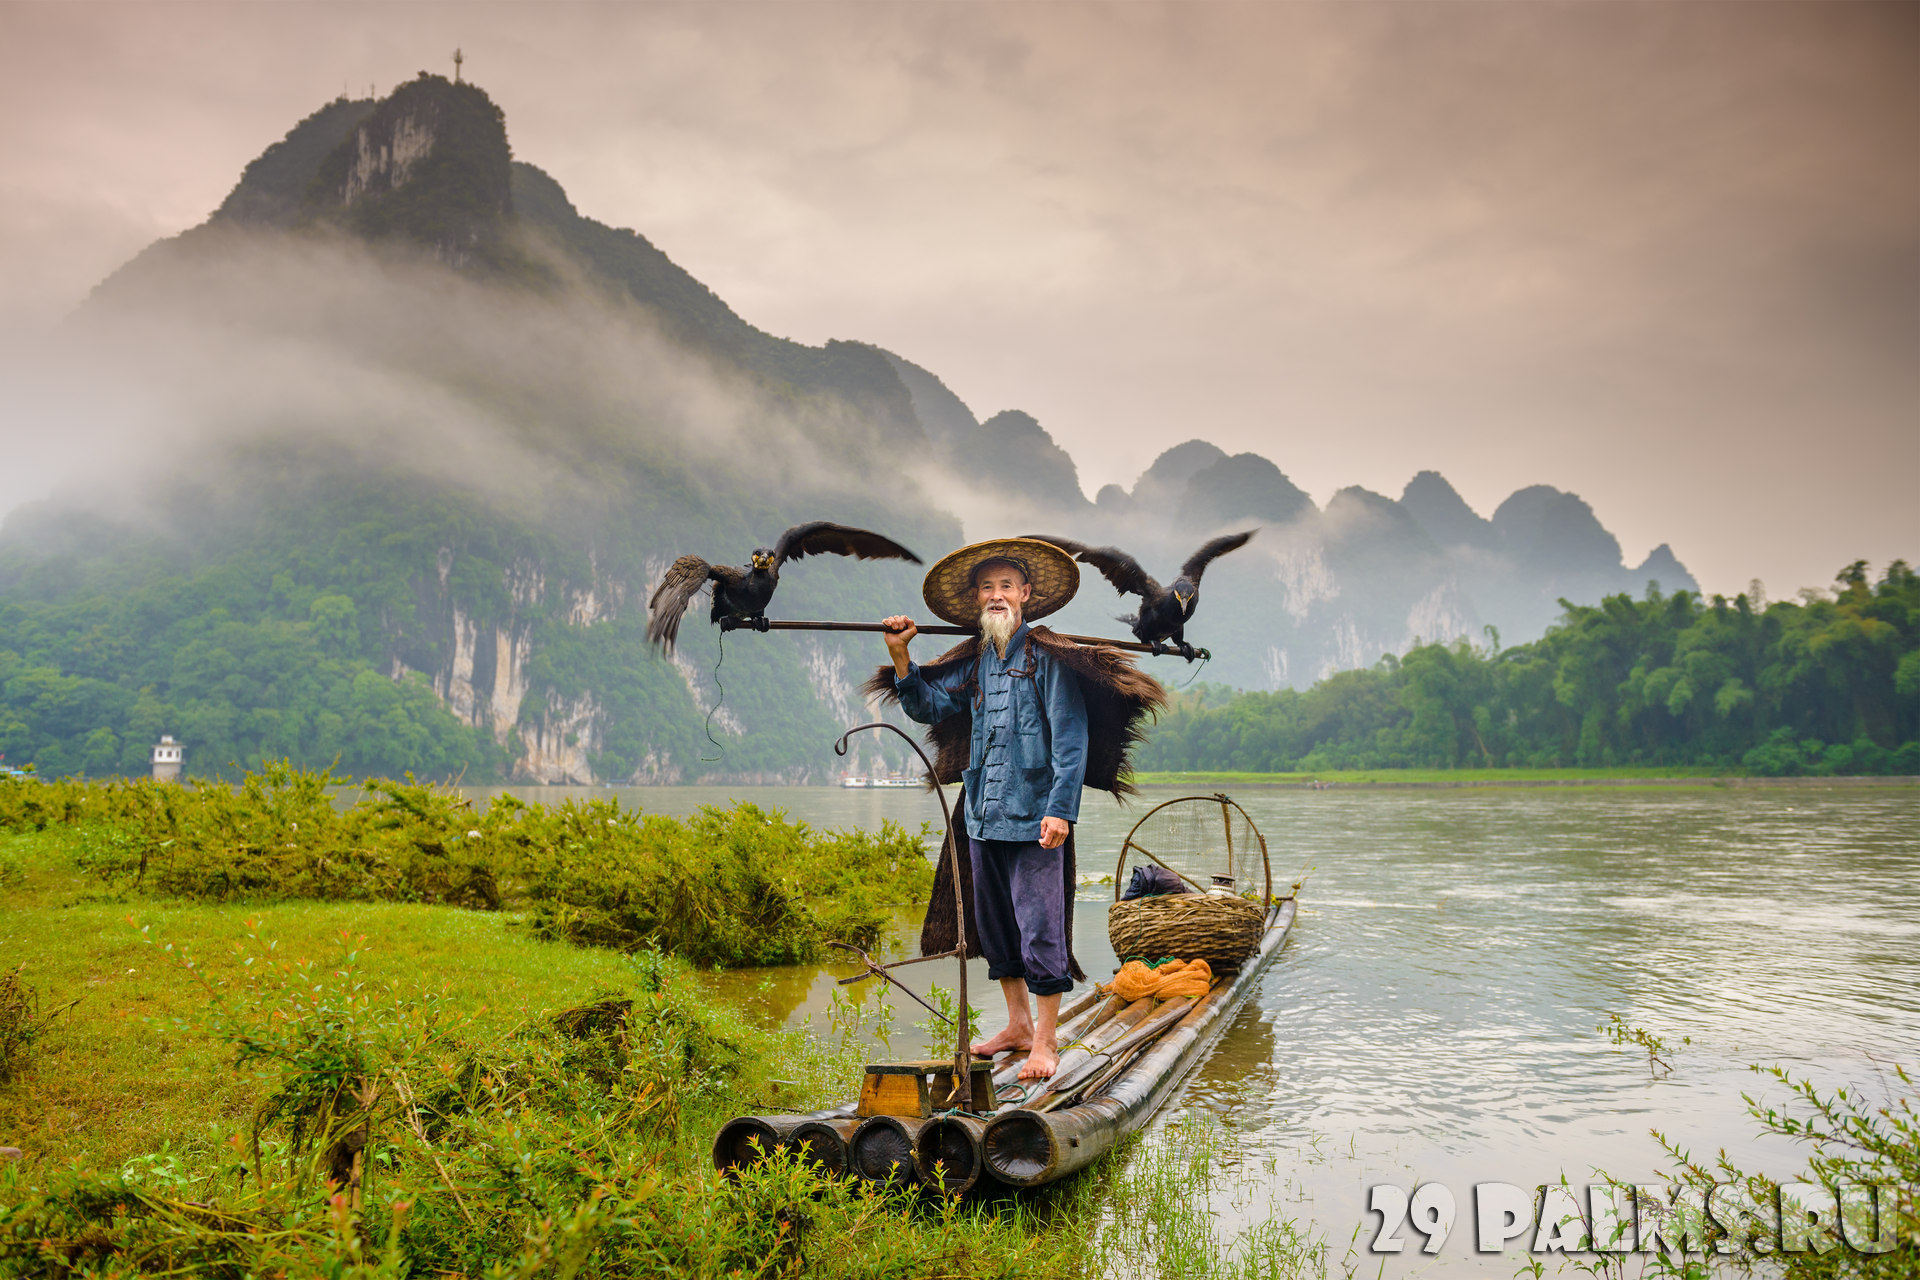 Китай. Провинция Гуйлинь. Рыбак с бакланами. Cormorant fisherman and his birds on the Li River in Yangshuo, Guangxi, China. Фото sepavone - Depositphotos